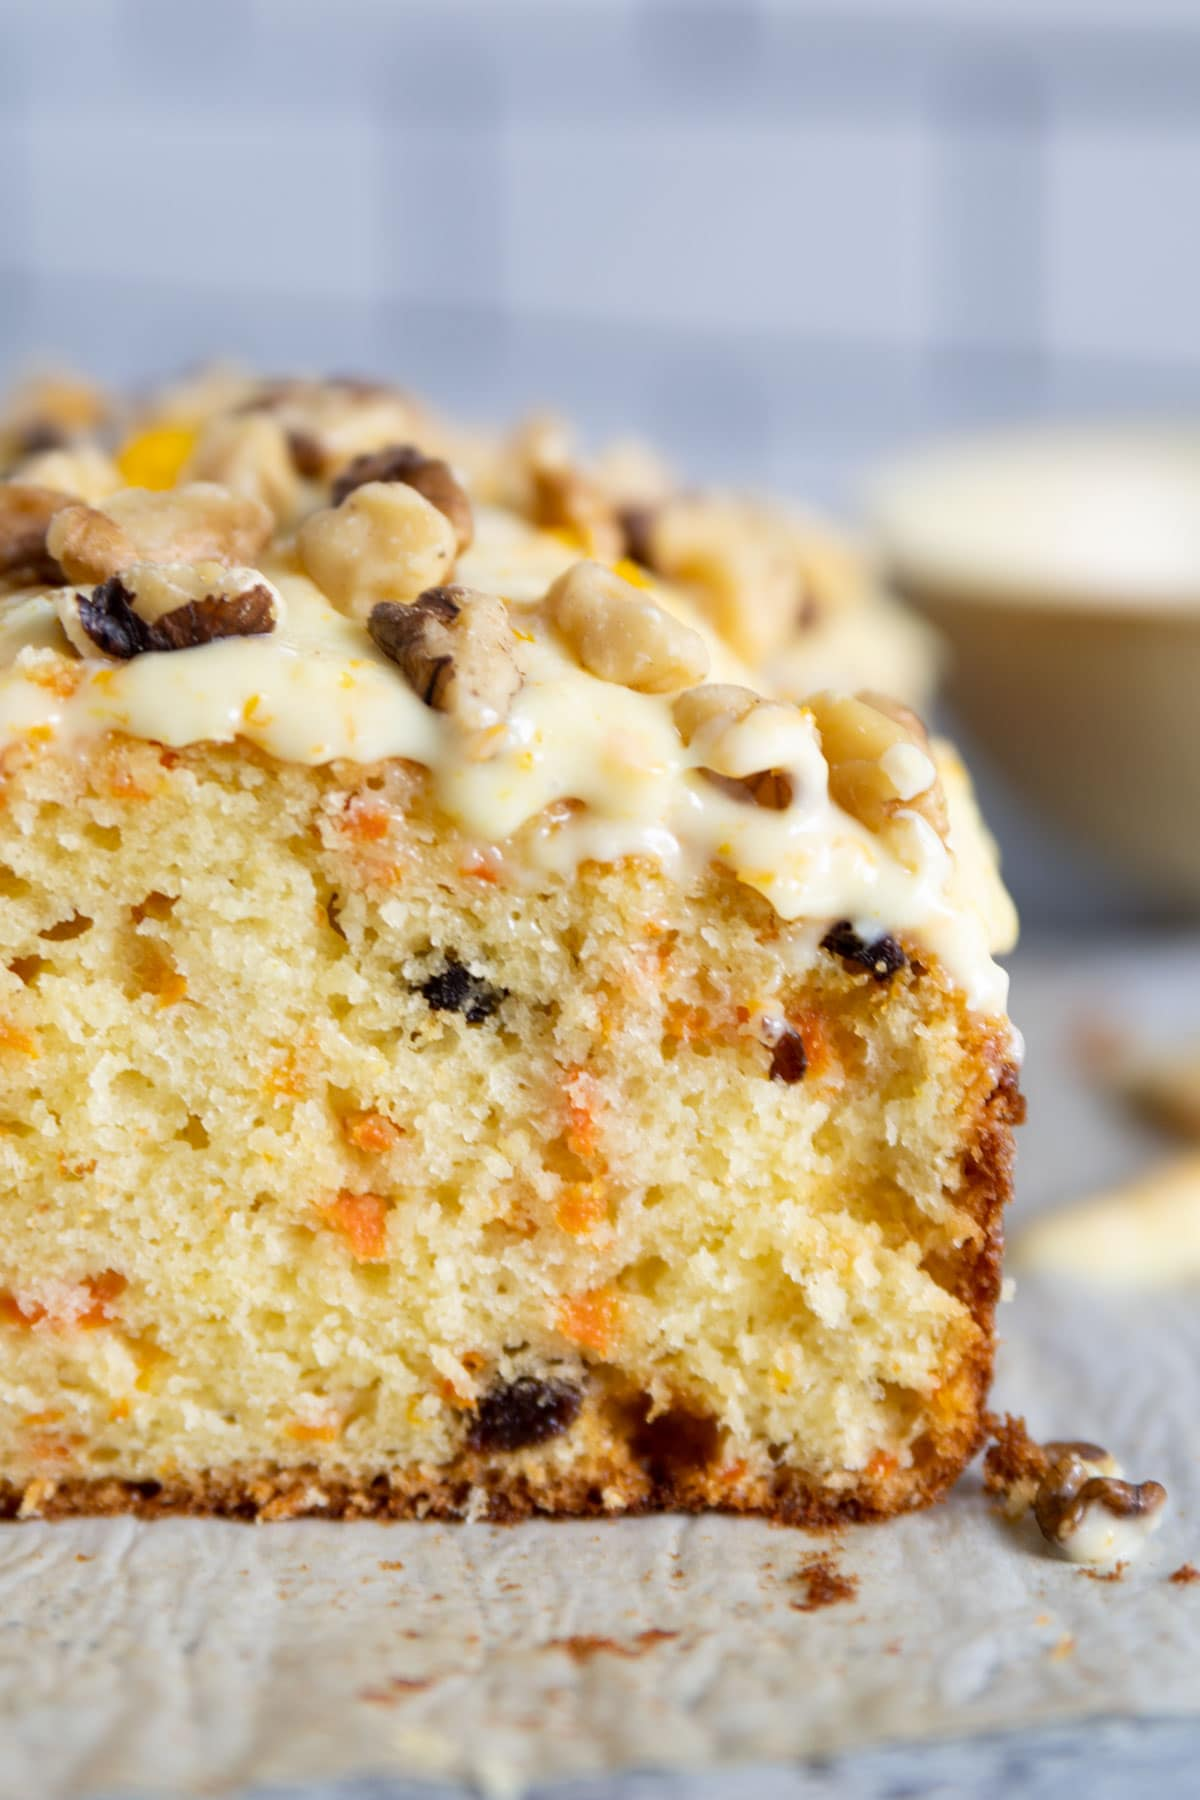 up close shot of frosting on the bread with walnuts on top. Carrot and raisins are inside the bread.